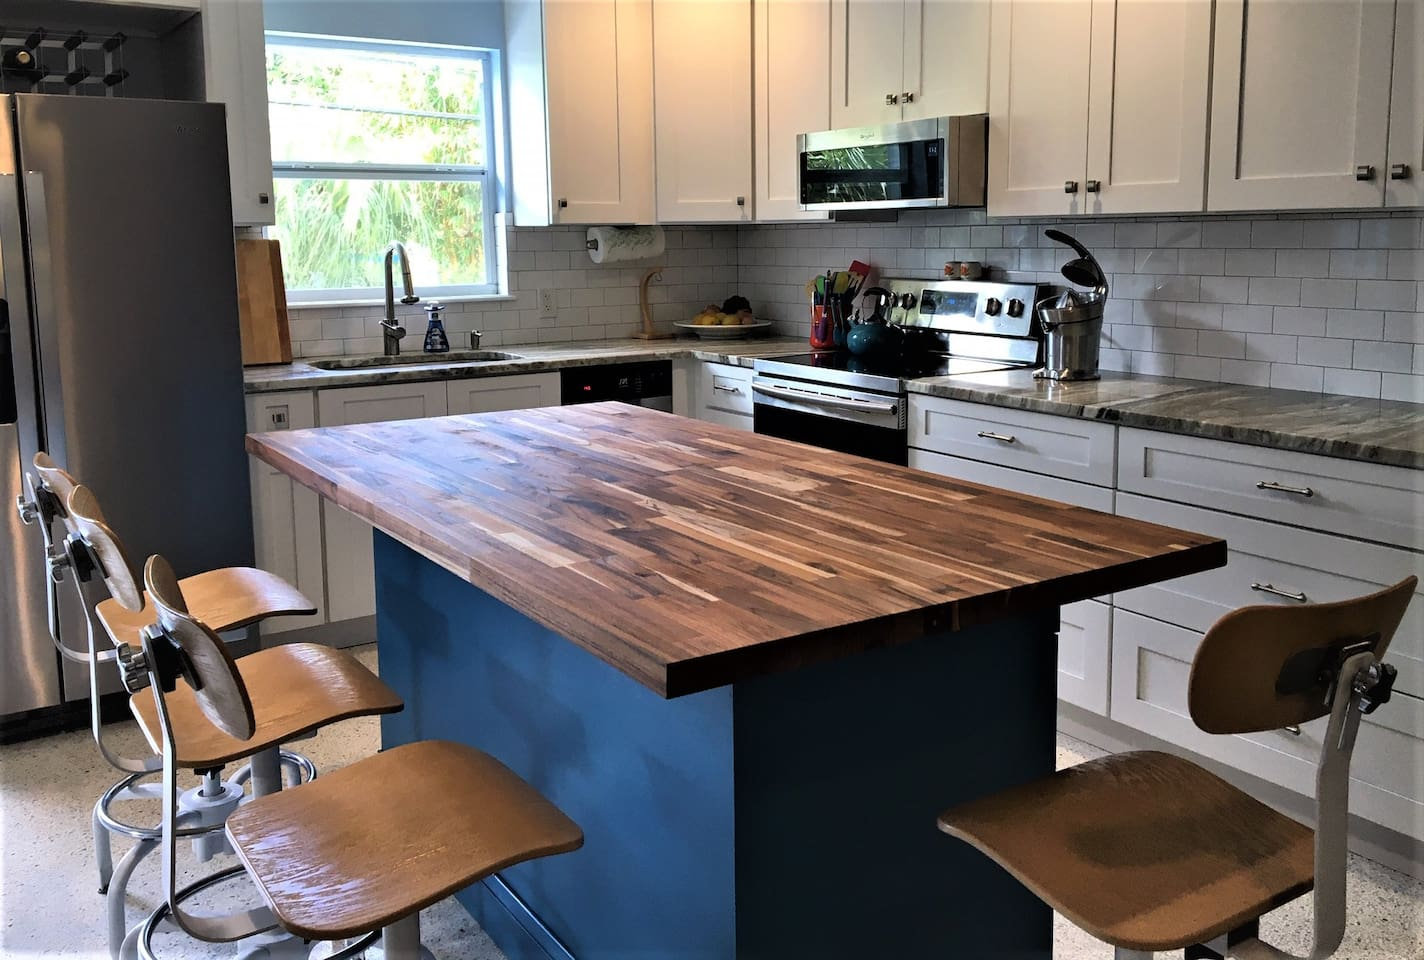 New kitchen November 2019.  Teak top island with granite on other counters.  Cabinets, sink, faucet and appliances are new. The serving dishes, silverware, cooking pots, pans and gadgets are all included.  Seating for four with room to do prep work